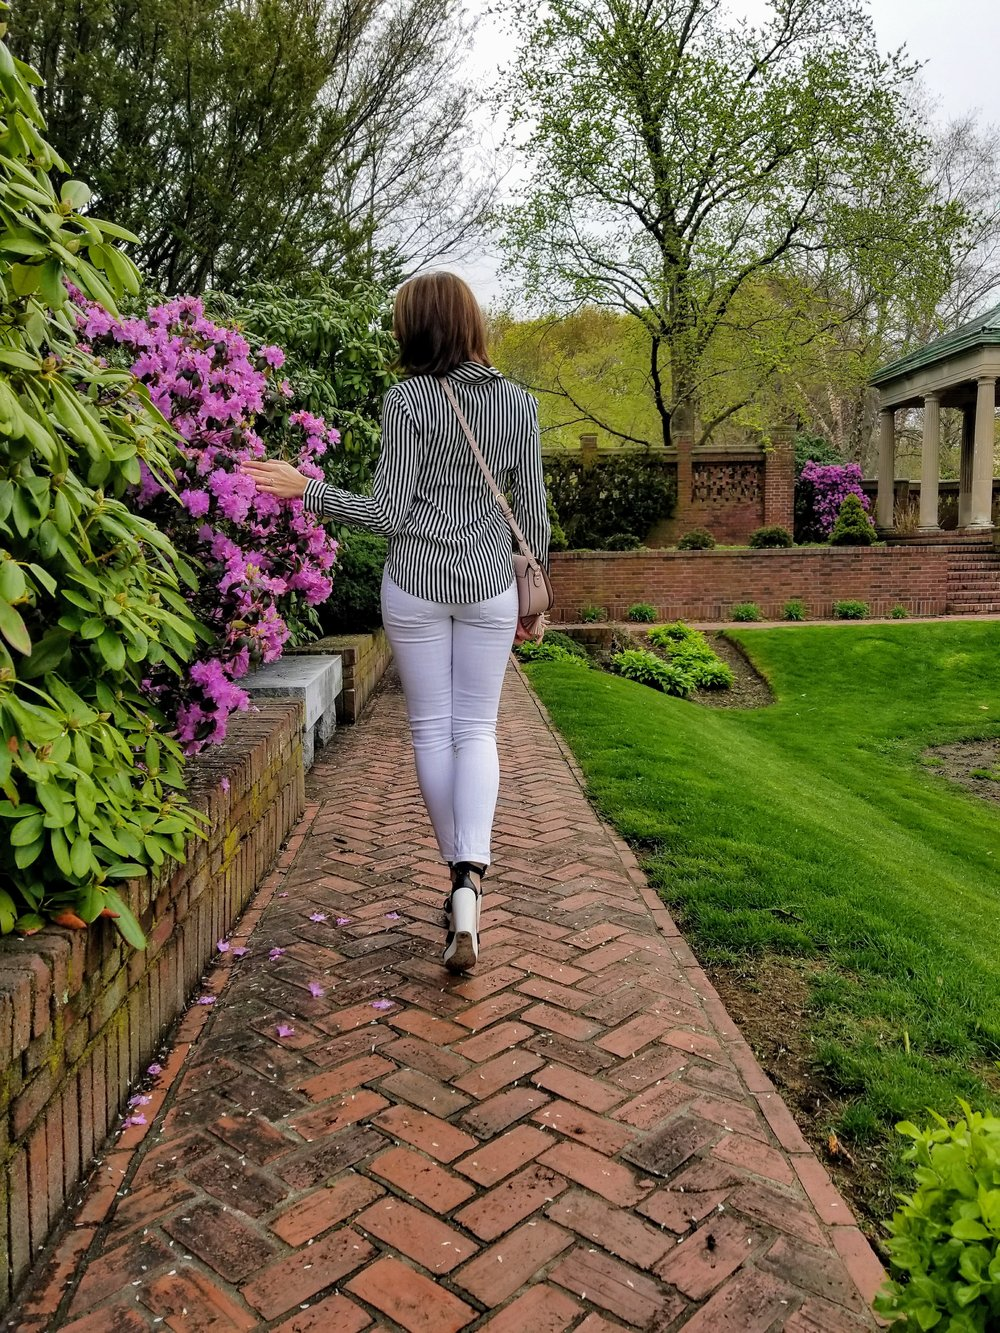 A photo of a girl walking away towards pink flowers on the tree, wearing white jeans, black and white wedges, and a blouse with black and white stripes, and a pink bag.